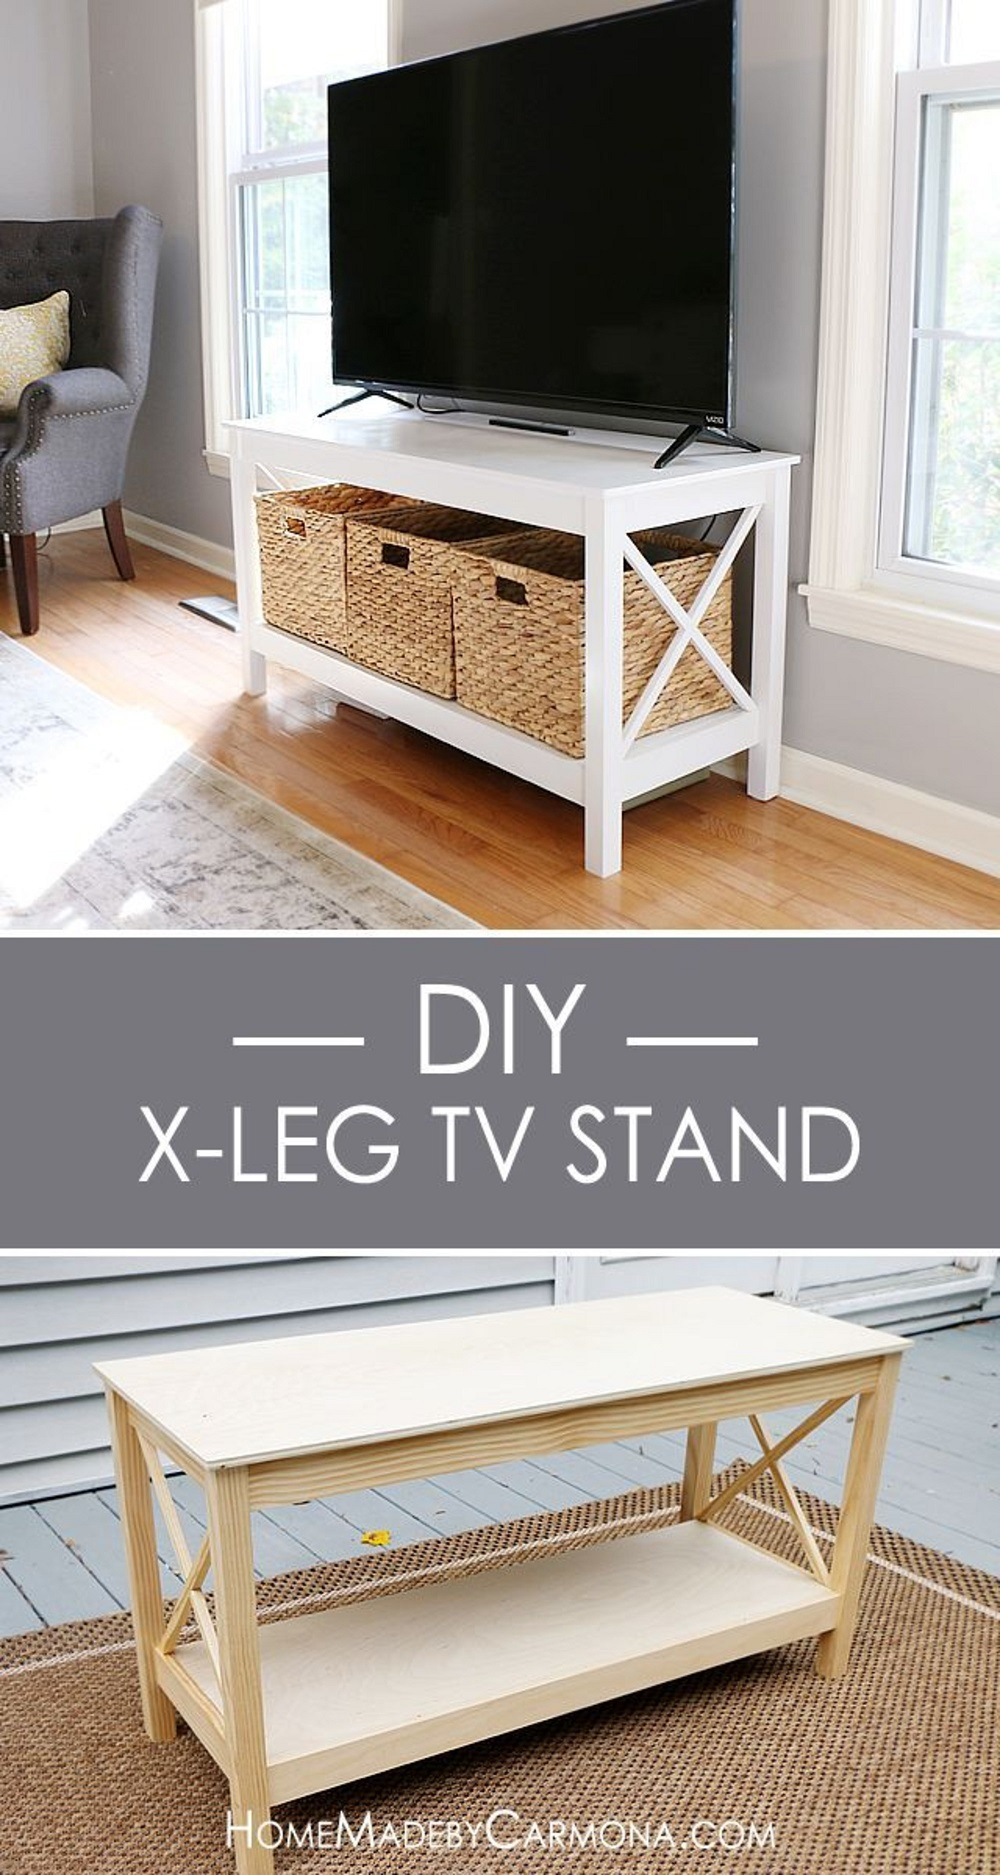 pix4-7 DIY TV stand ideas and examples that you can put up in your home